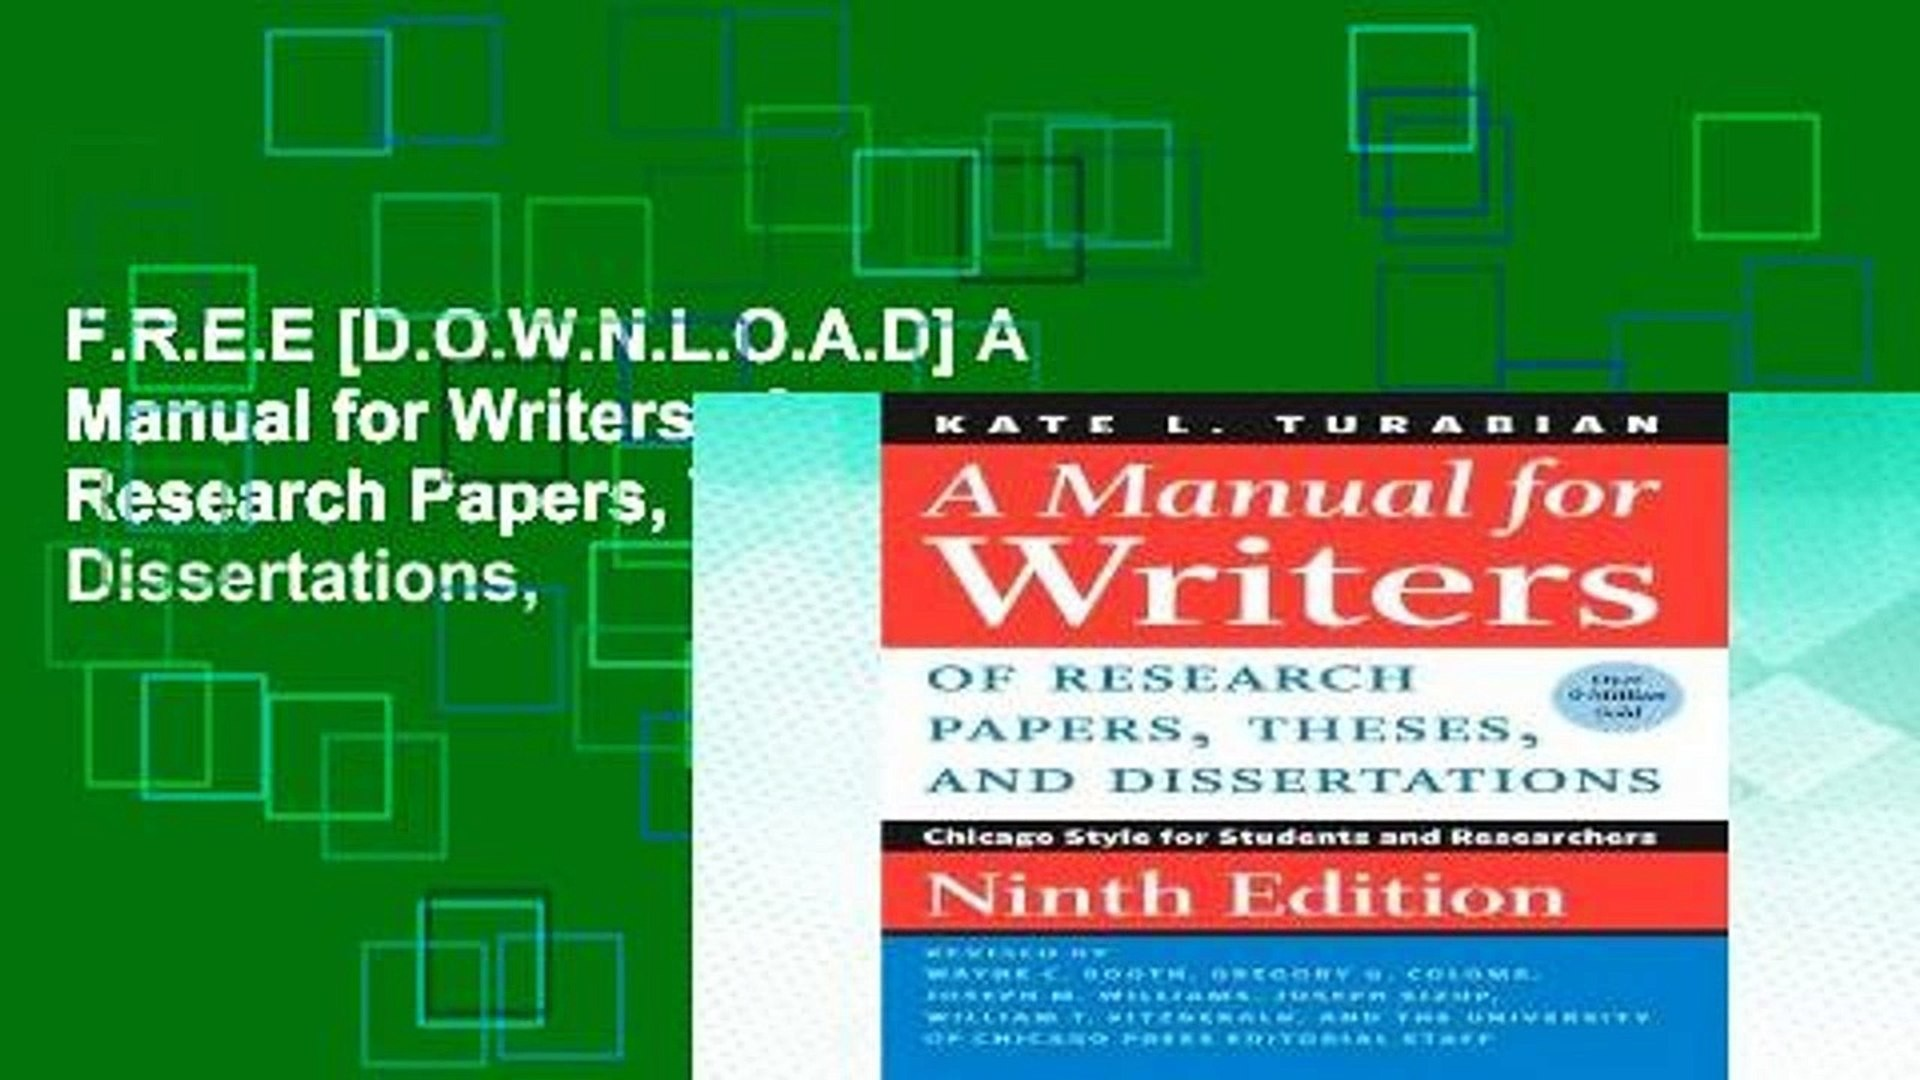 013 X1080 Kcn Research Paper Manual For Writers Of Papers Theses And Magnificent Dissertations 8th 13 A 9th Edition Apa 1920